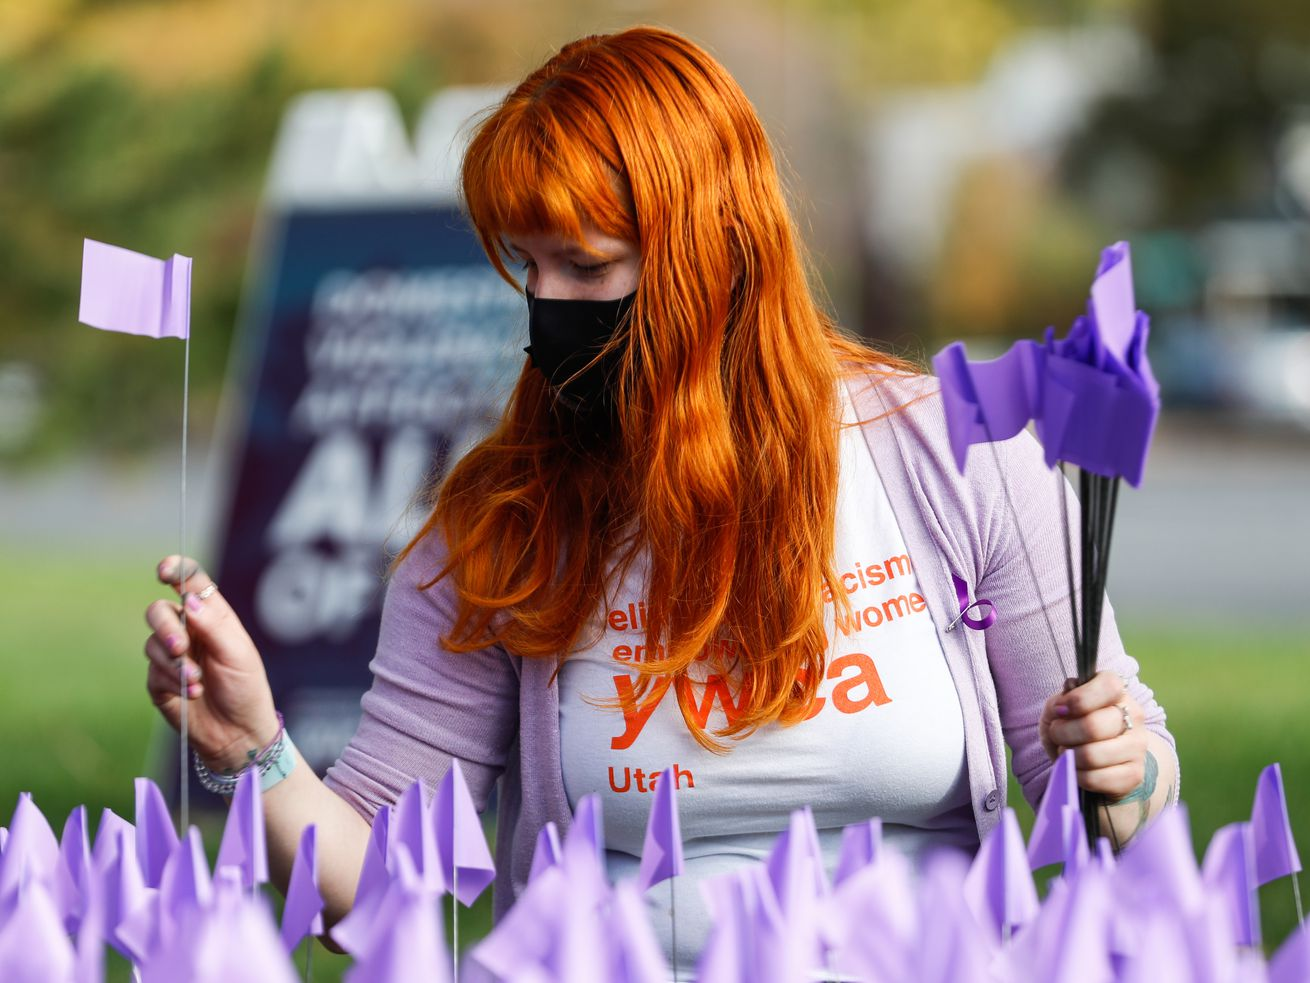 Christa Lynn Luckenbach plants a flag during a purple flag plating event at Liberty Park in Salt Lake City on Saturday, Oct. 17, 2020. The event was held by YWCA Utah to recognize the thousands of individuals in Utah who are impacted by domestic violence each year for the Stop the Violence Utah campaign.